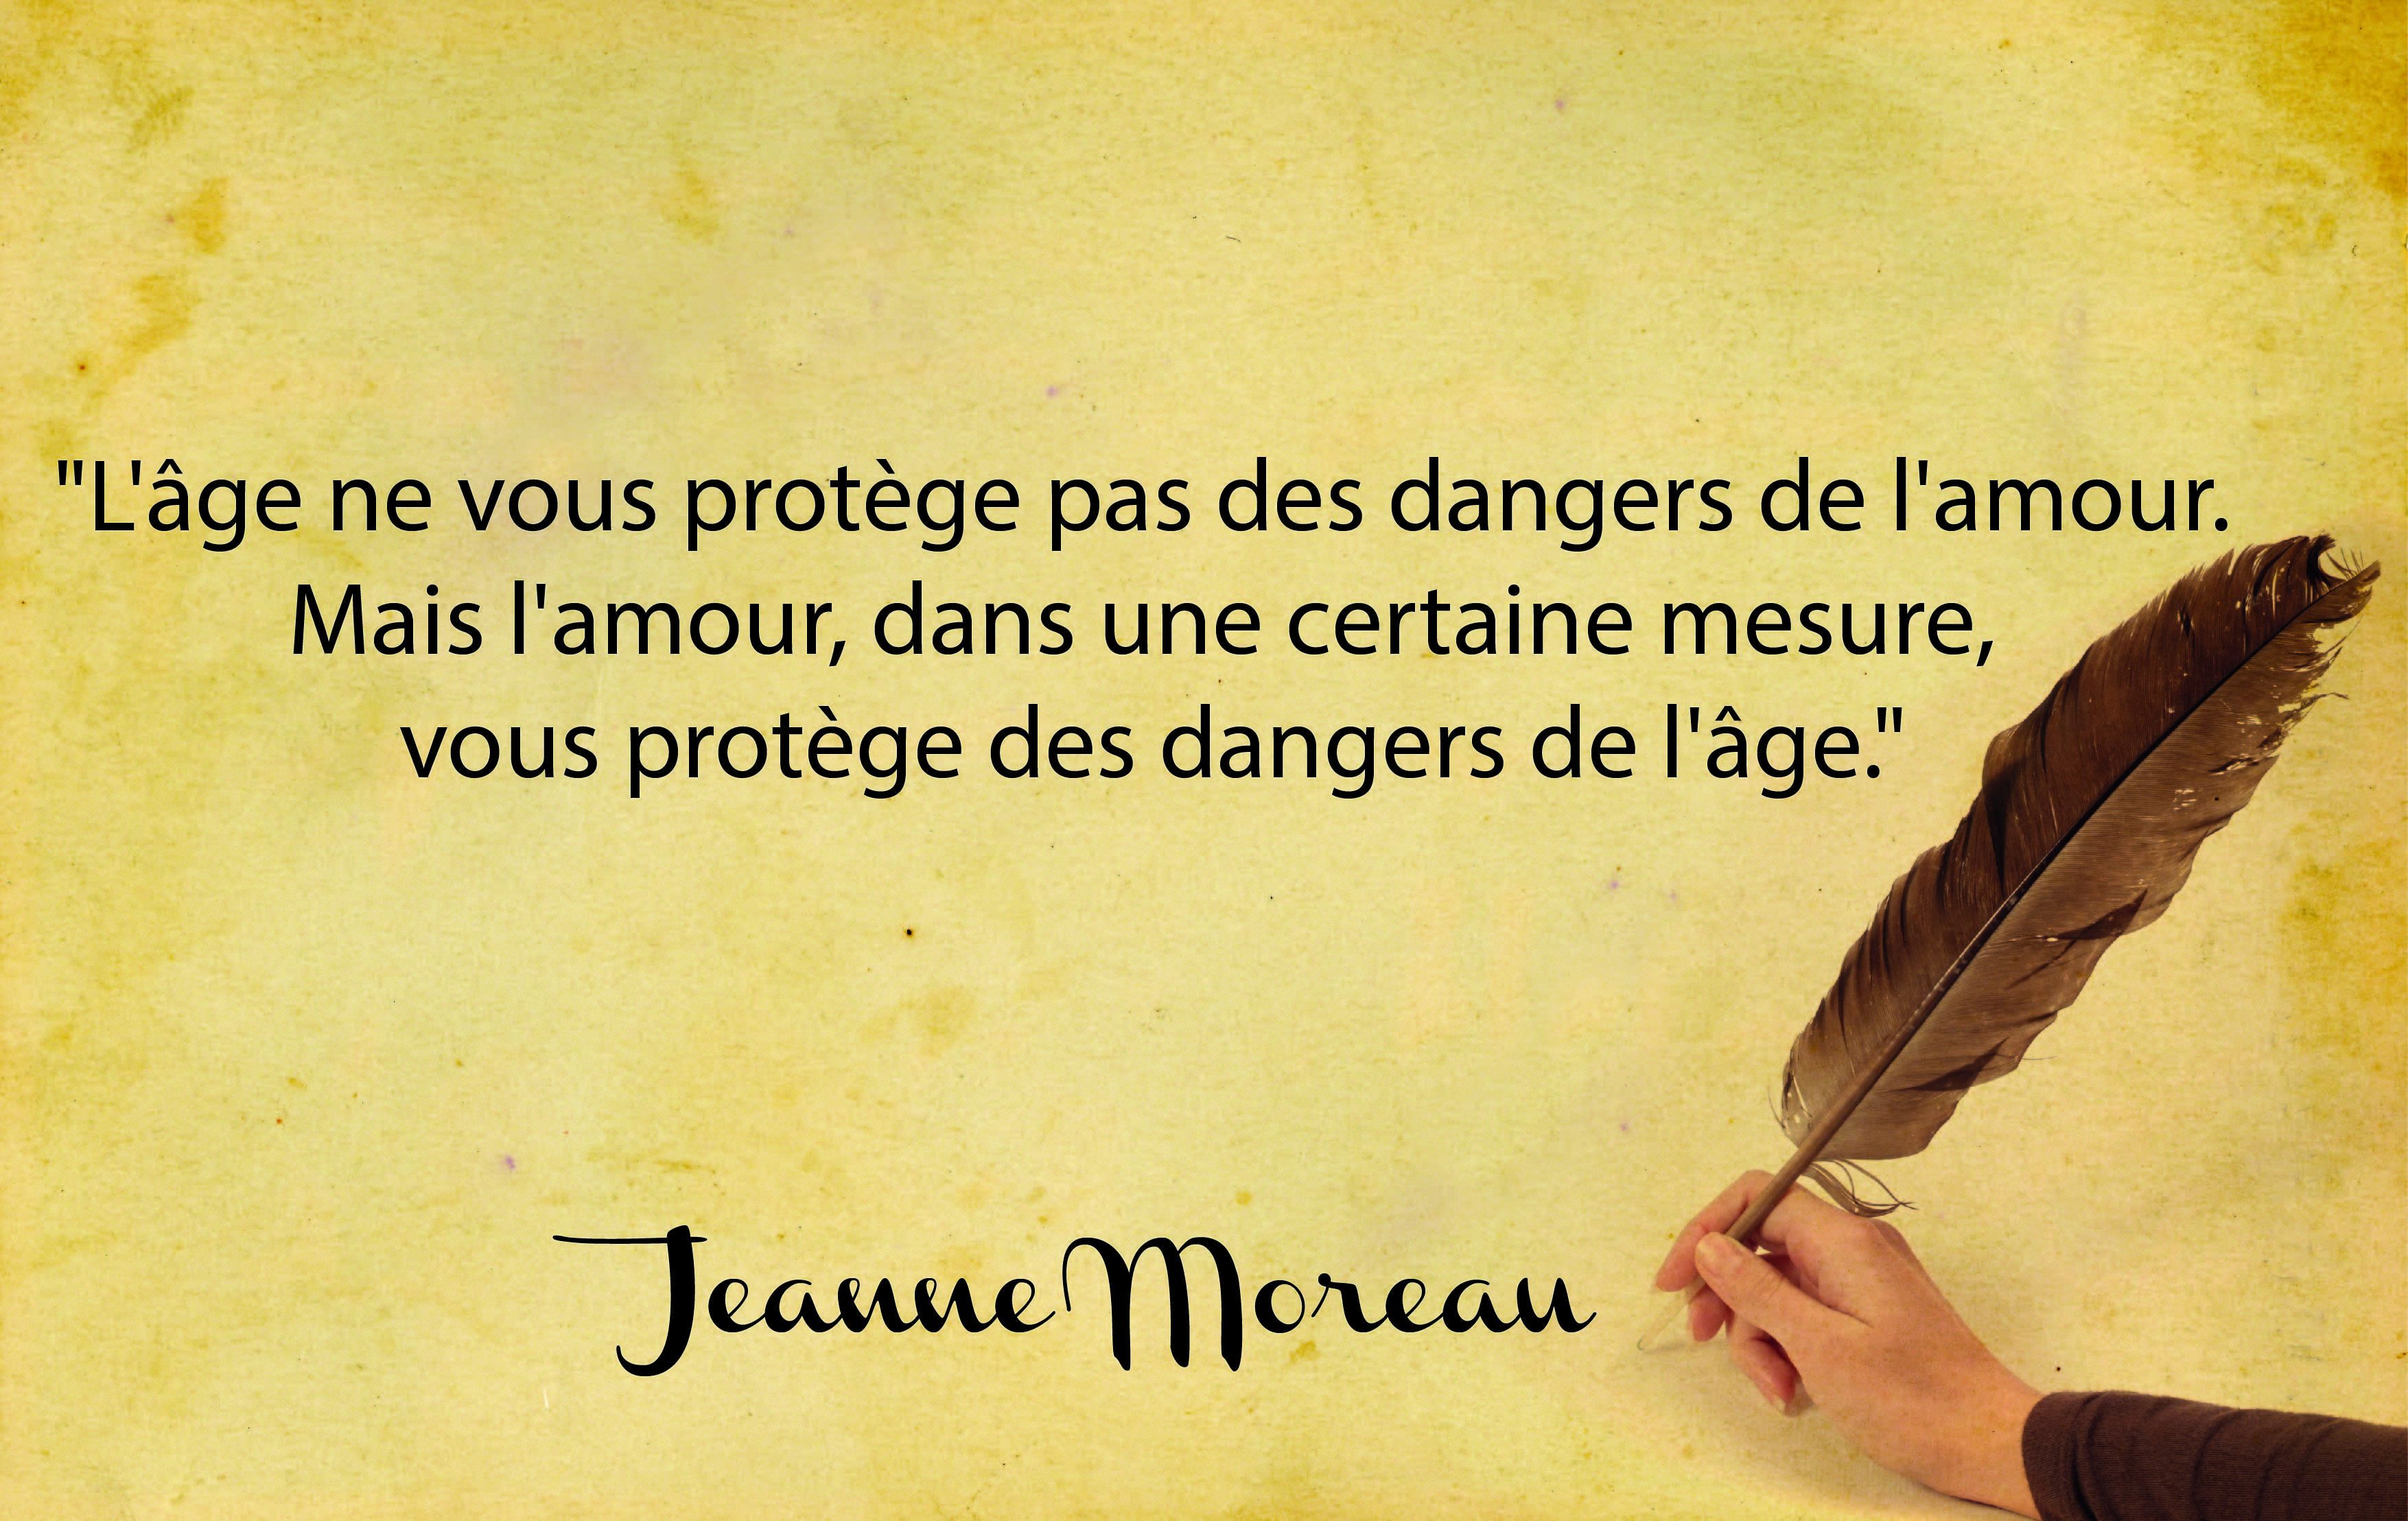 'Age doesn't protect you from the dangers of love. But love, in a certain measure, protects you from the dangers of age.' Joanne Moreau.